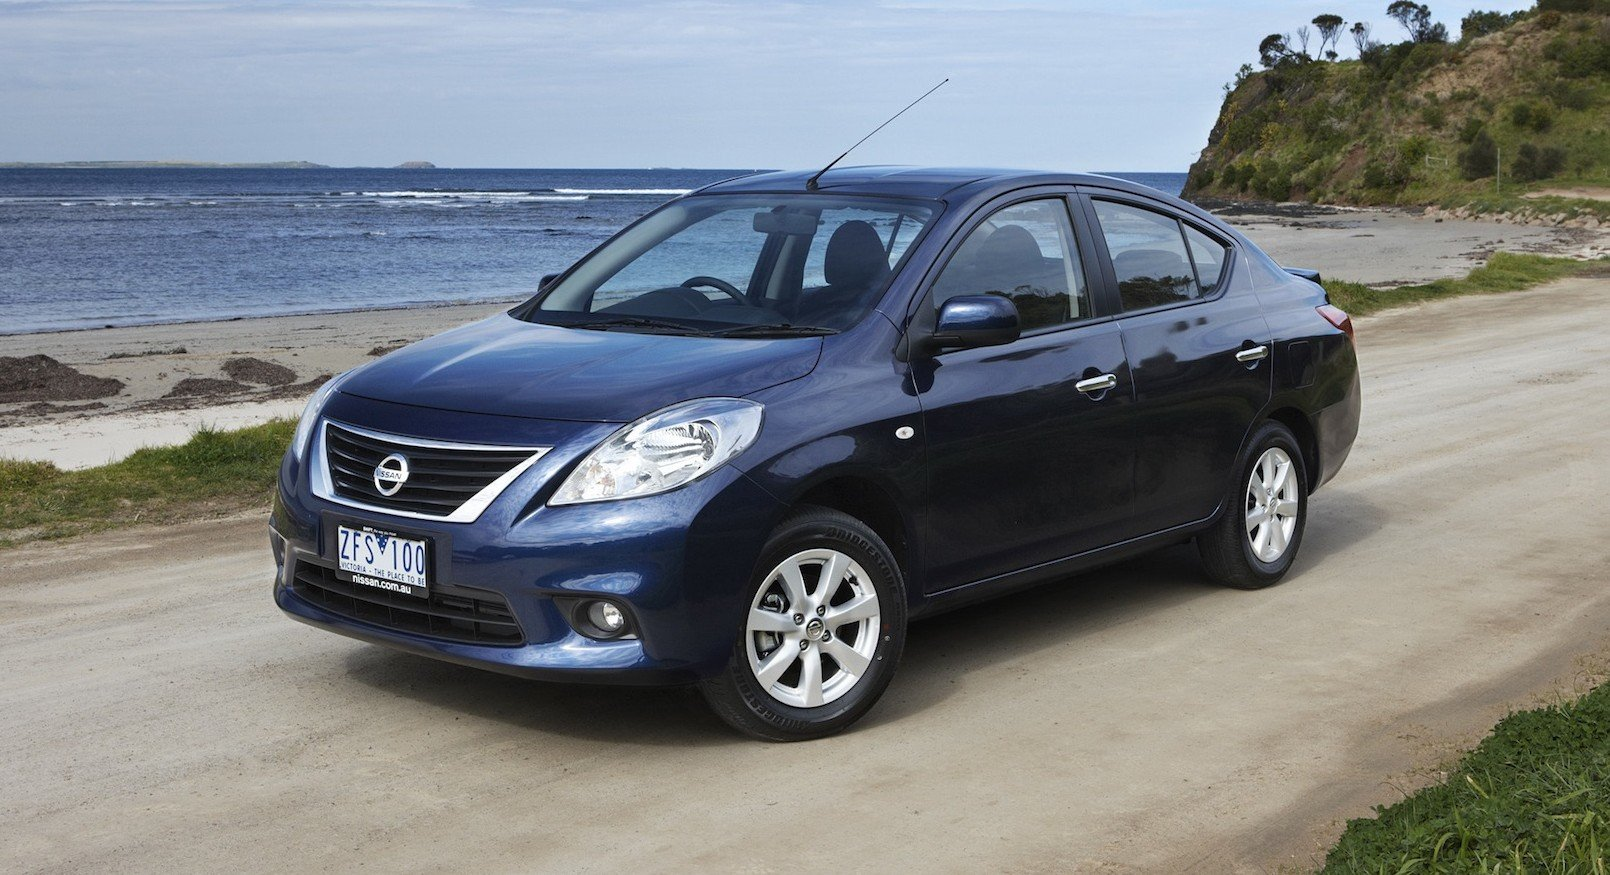 nissan almera australian prices and specifications photos 1 of 22. Black Bedroom Furniture Sets. Home Design Ideas